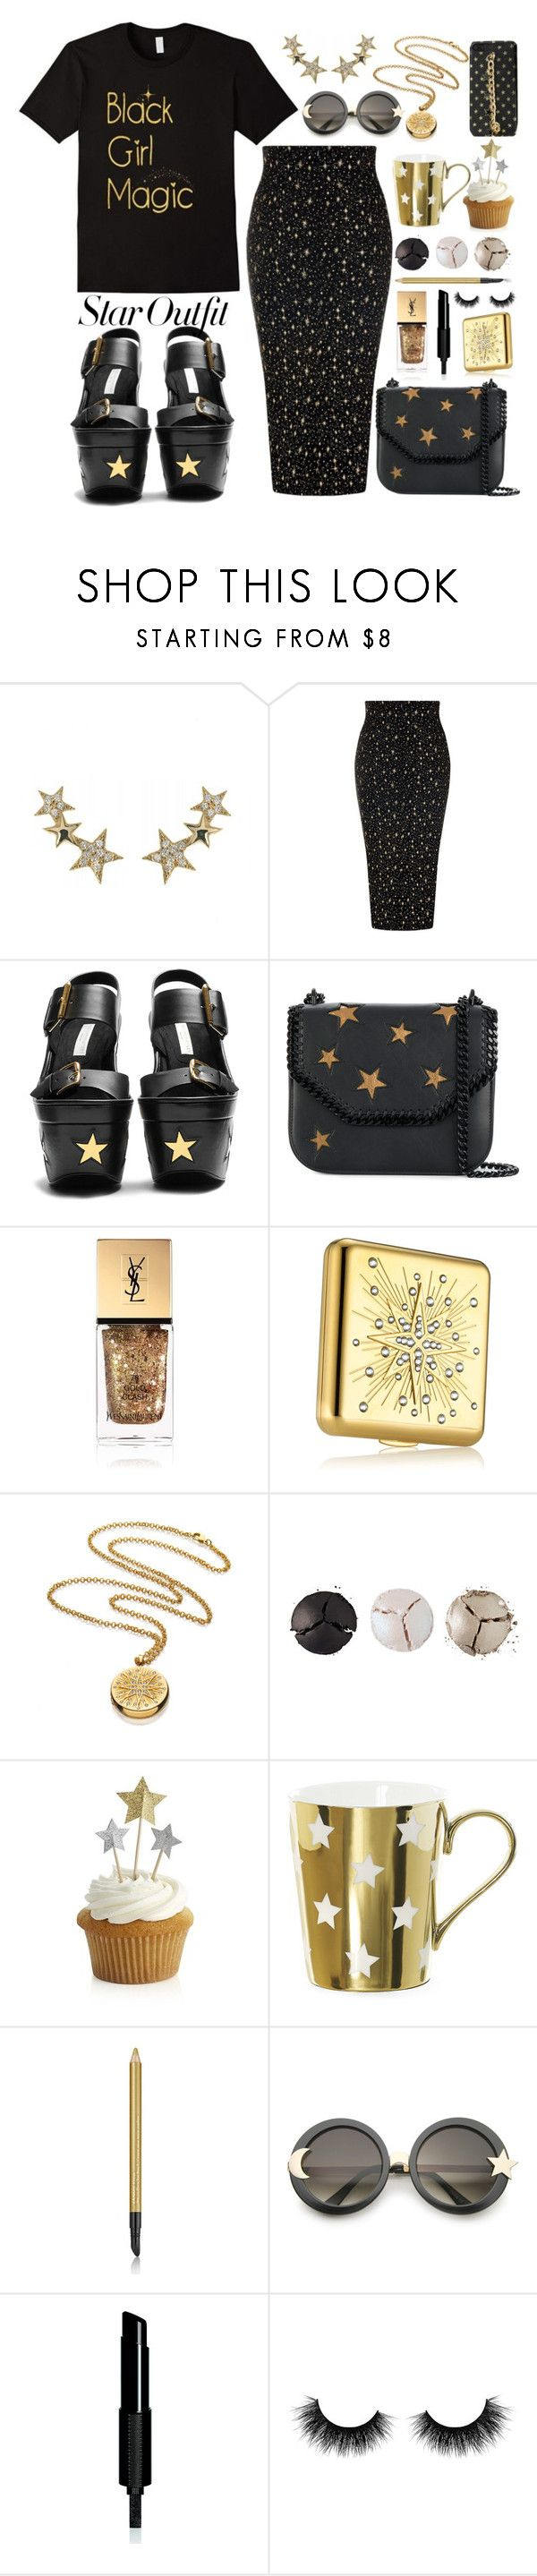 """""""Twinkle, Twinkle: Star Outfits"""" by queenvirgo ❤ liked on Polyvore featuring Talia Naomi, STELLA McCARTNEY, Yves Saint Laurent, Estée Lauder, Pat McGrath, Crate and Barrel, Miss Étoile, ZeroUV, Givenchy and Artémes"""